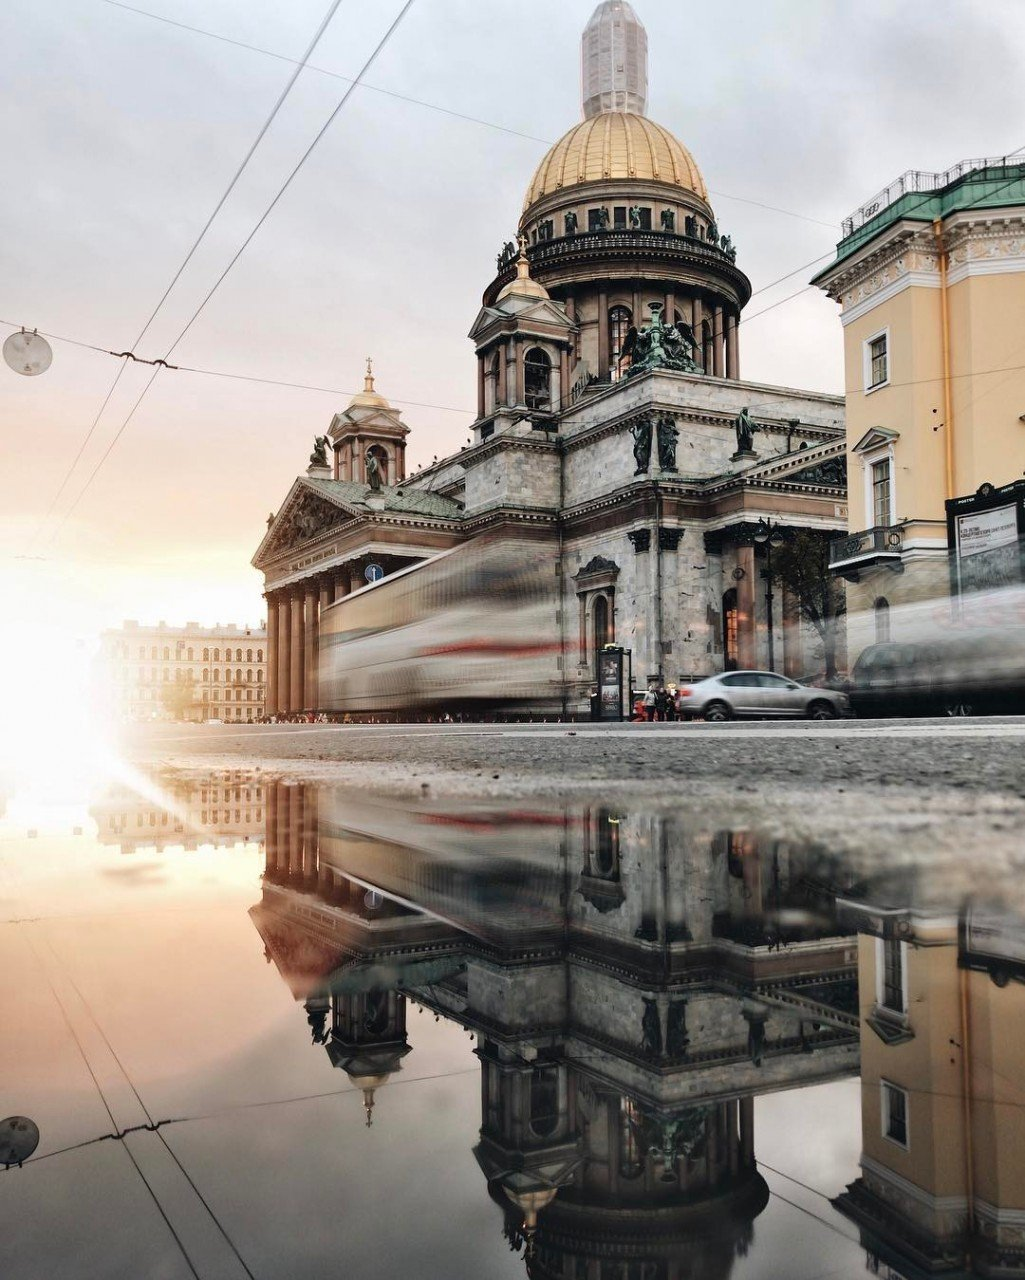 Топ блогеров Санкт-Петербурга  / Top bloggers of Saint-Petersburg